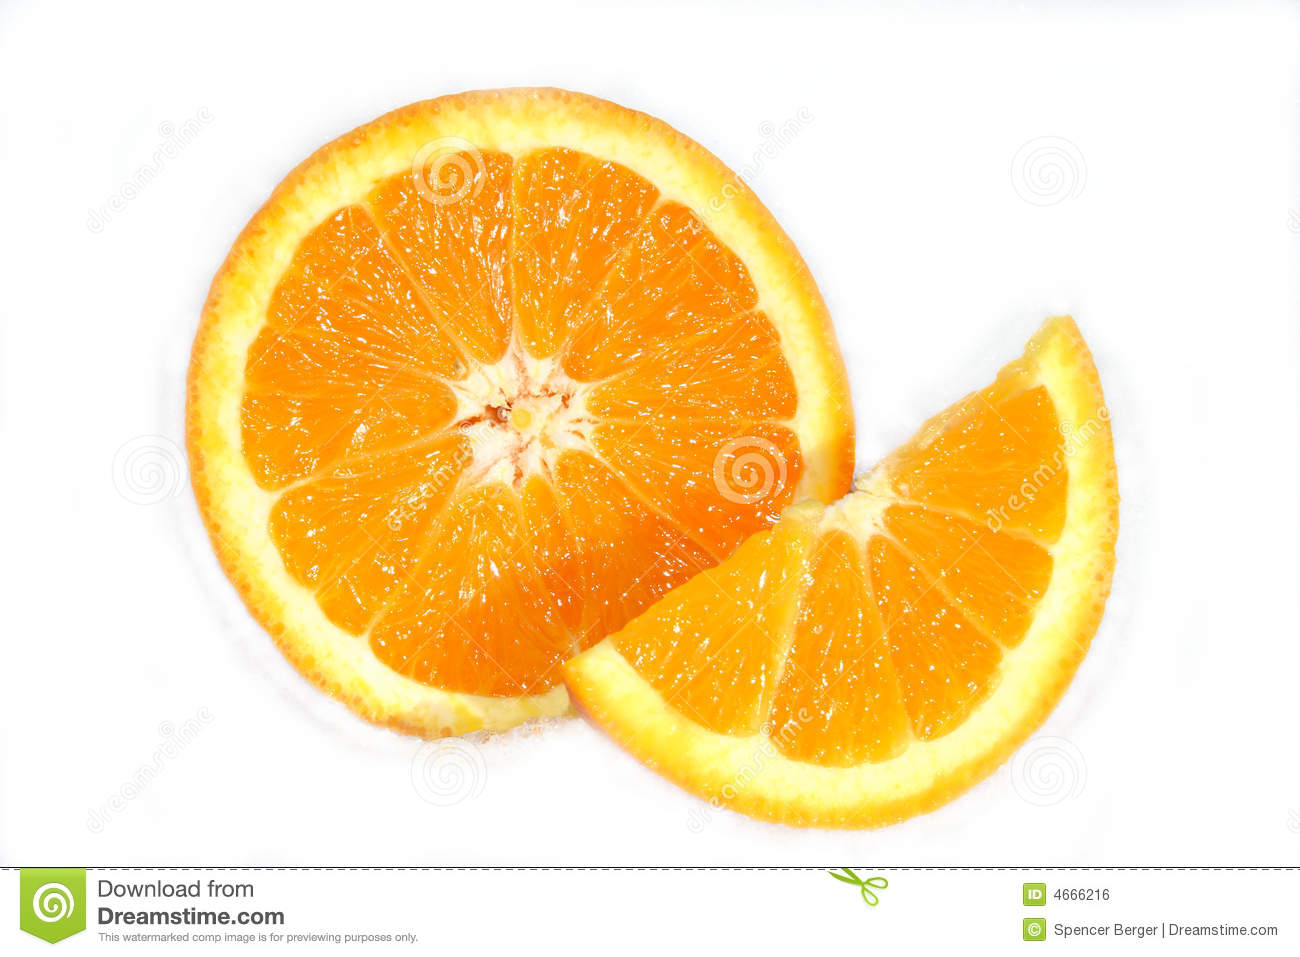 how to draw an orange slice